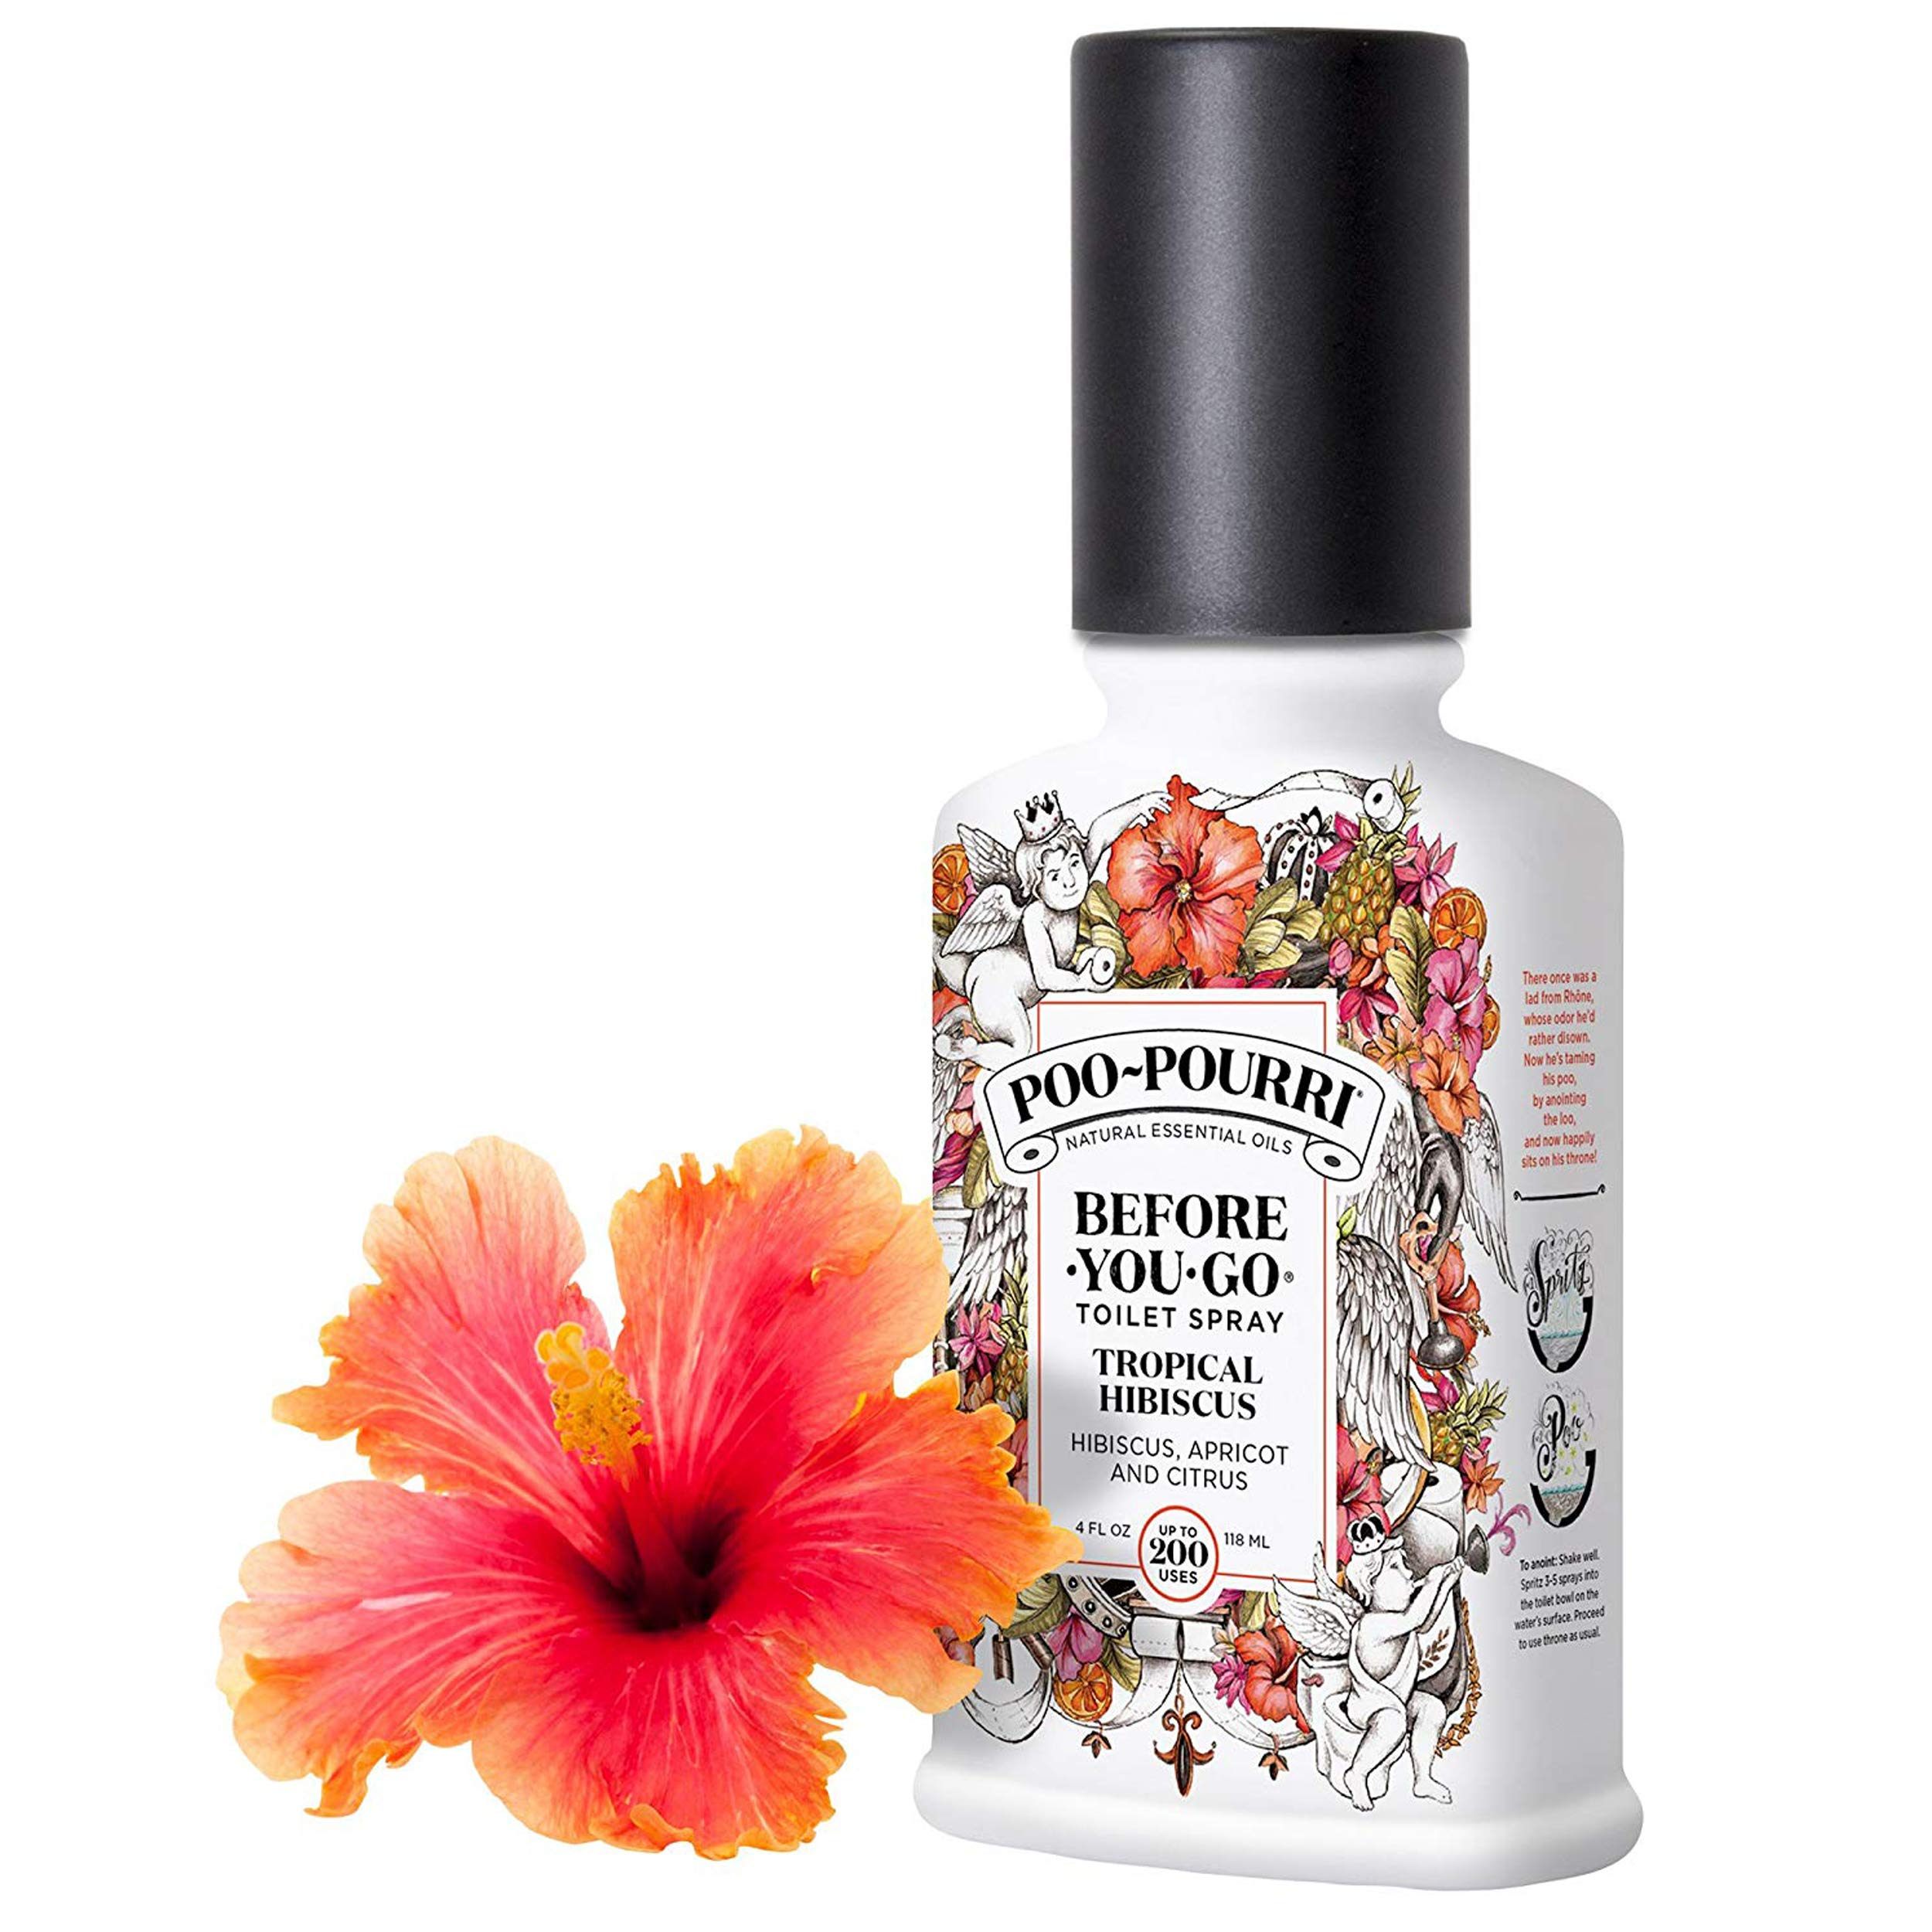 Poo-Pourri Lavender Vanilla, Tropical Hibiscus and Vanilla Mint 4-Ounce Set by Poo-Pourri (Image #5)